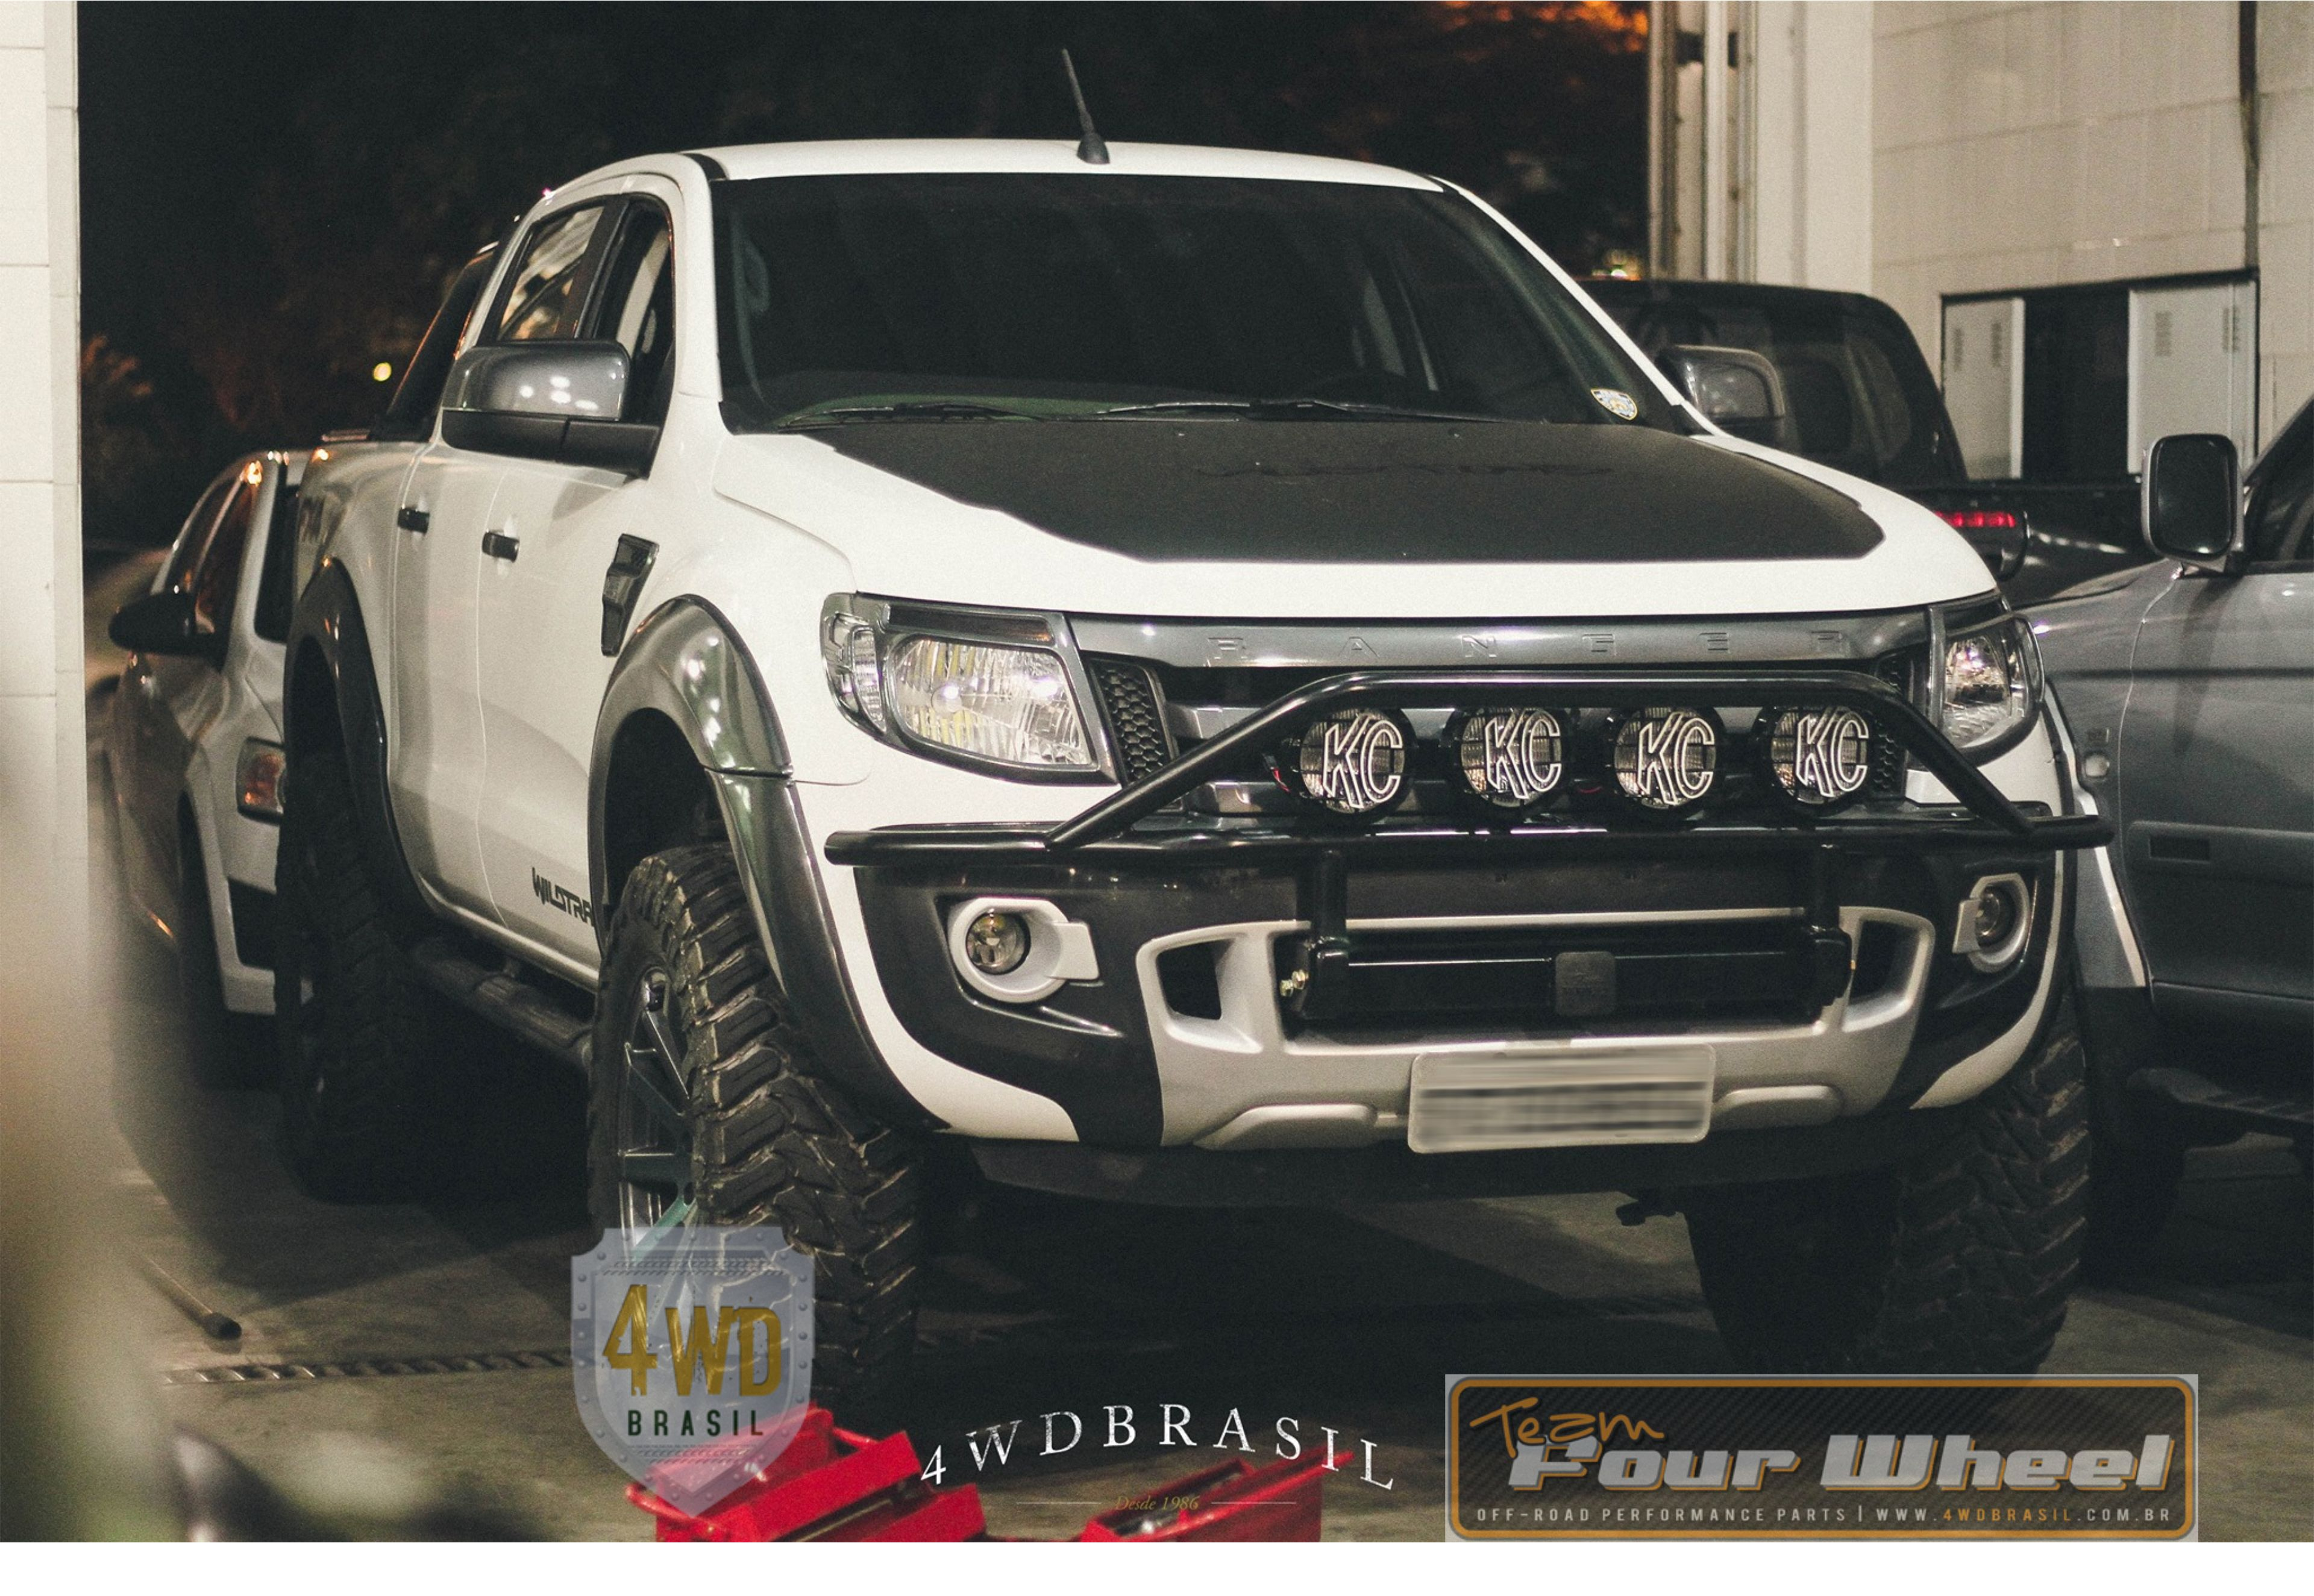 4wd Brasil Acess 243 Rios Para Off Road De Alta Performance